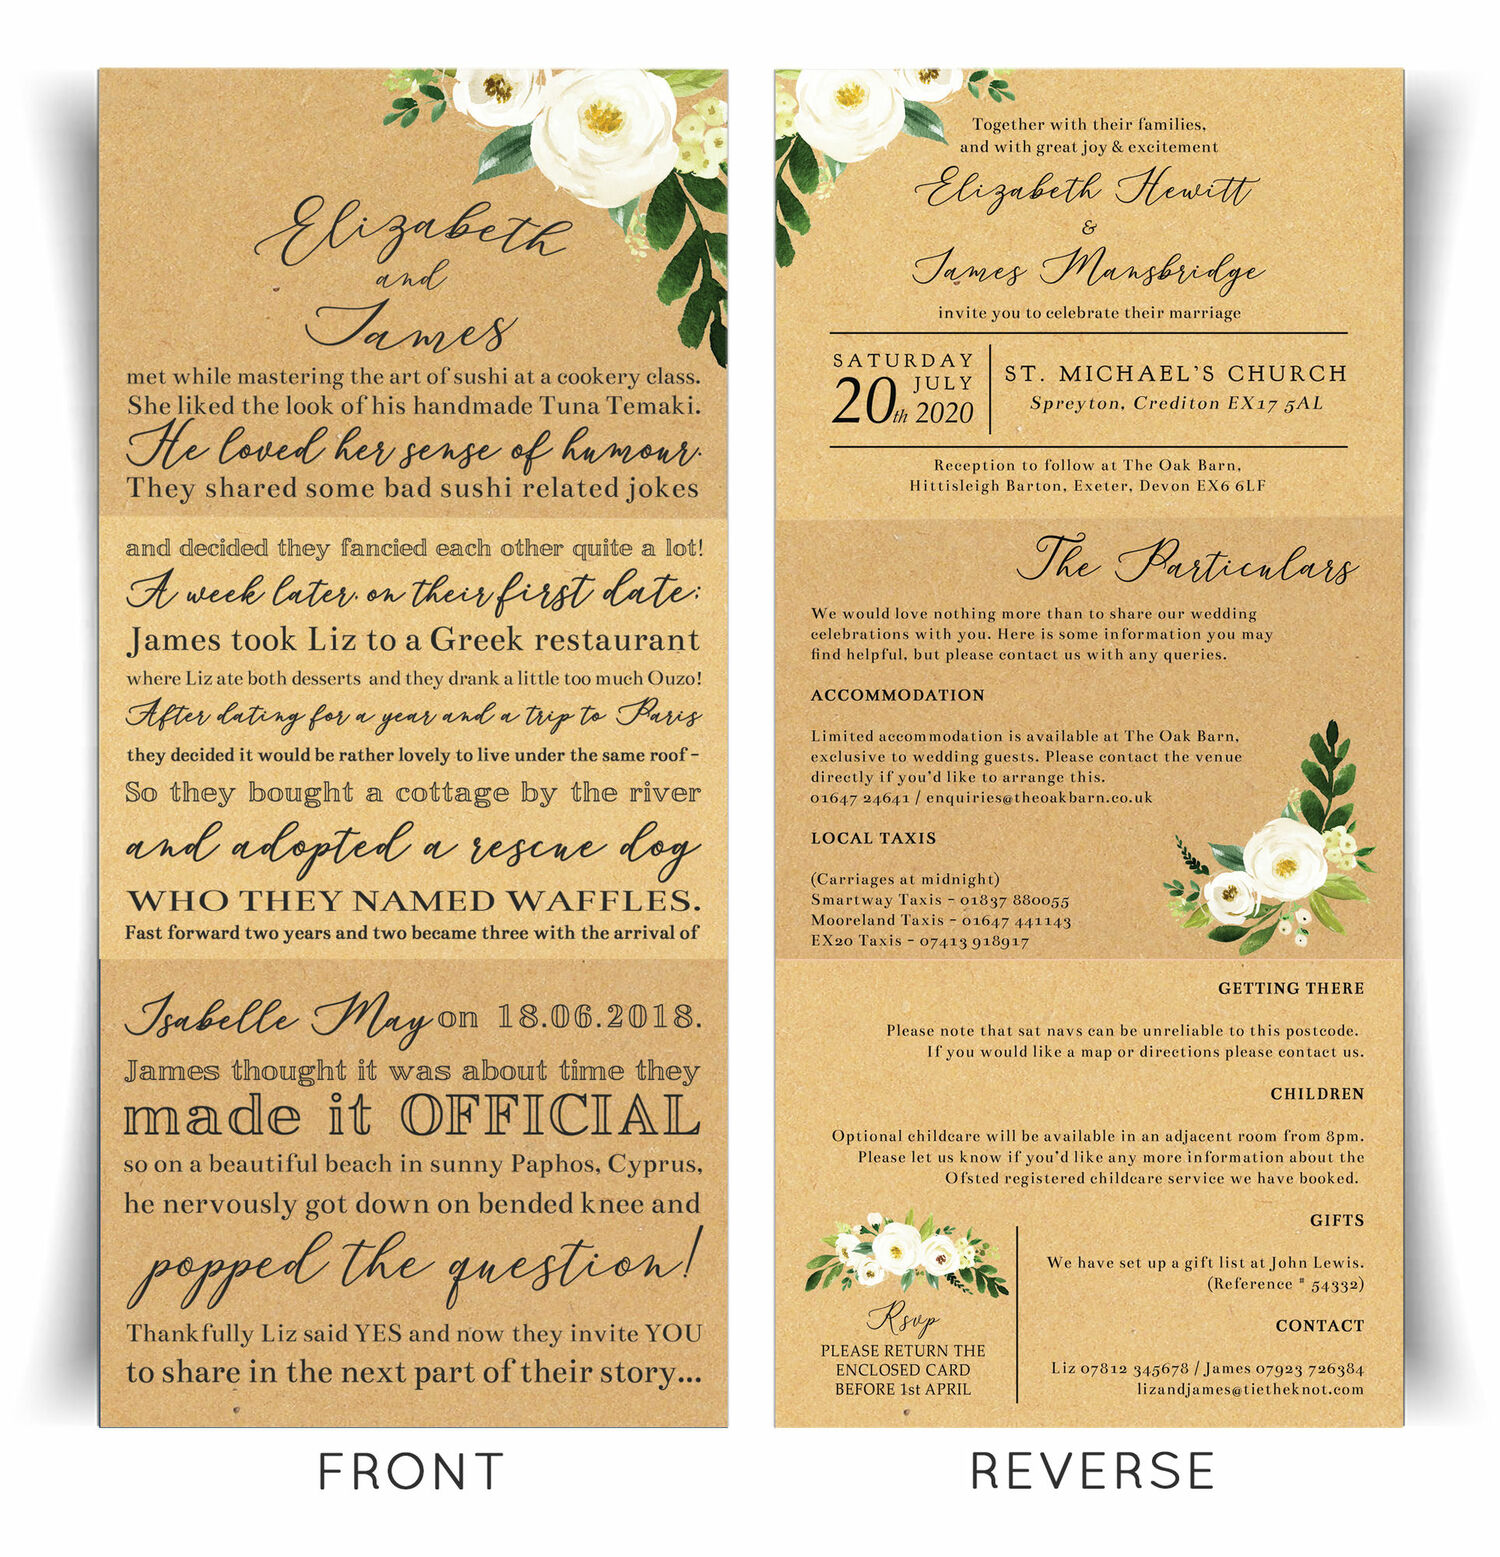 Our Love Story' Cream Flowers Wedding Invitation from £2.25 each